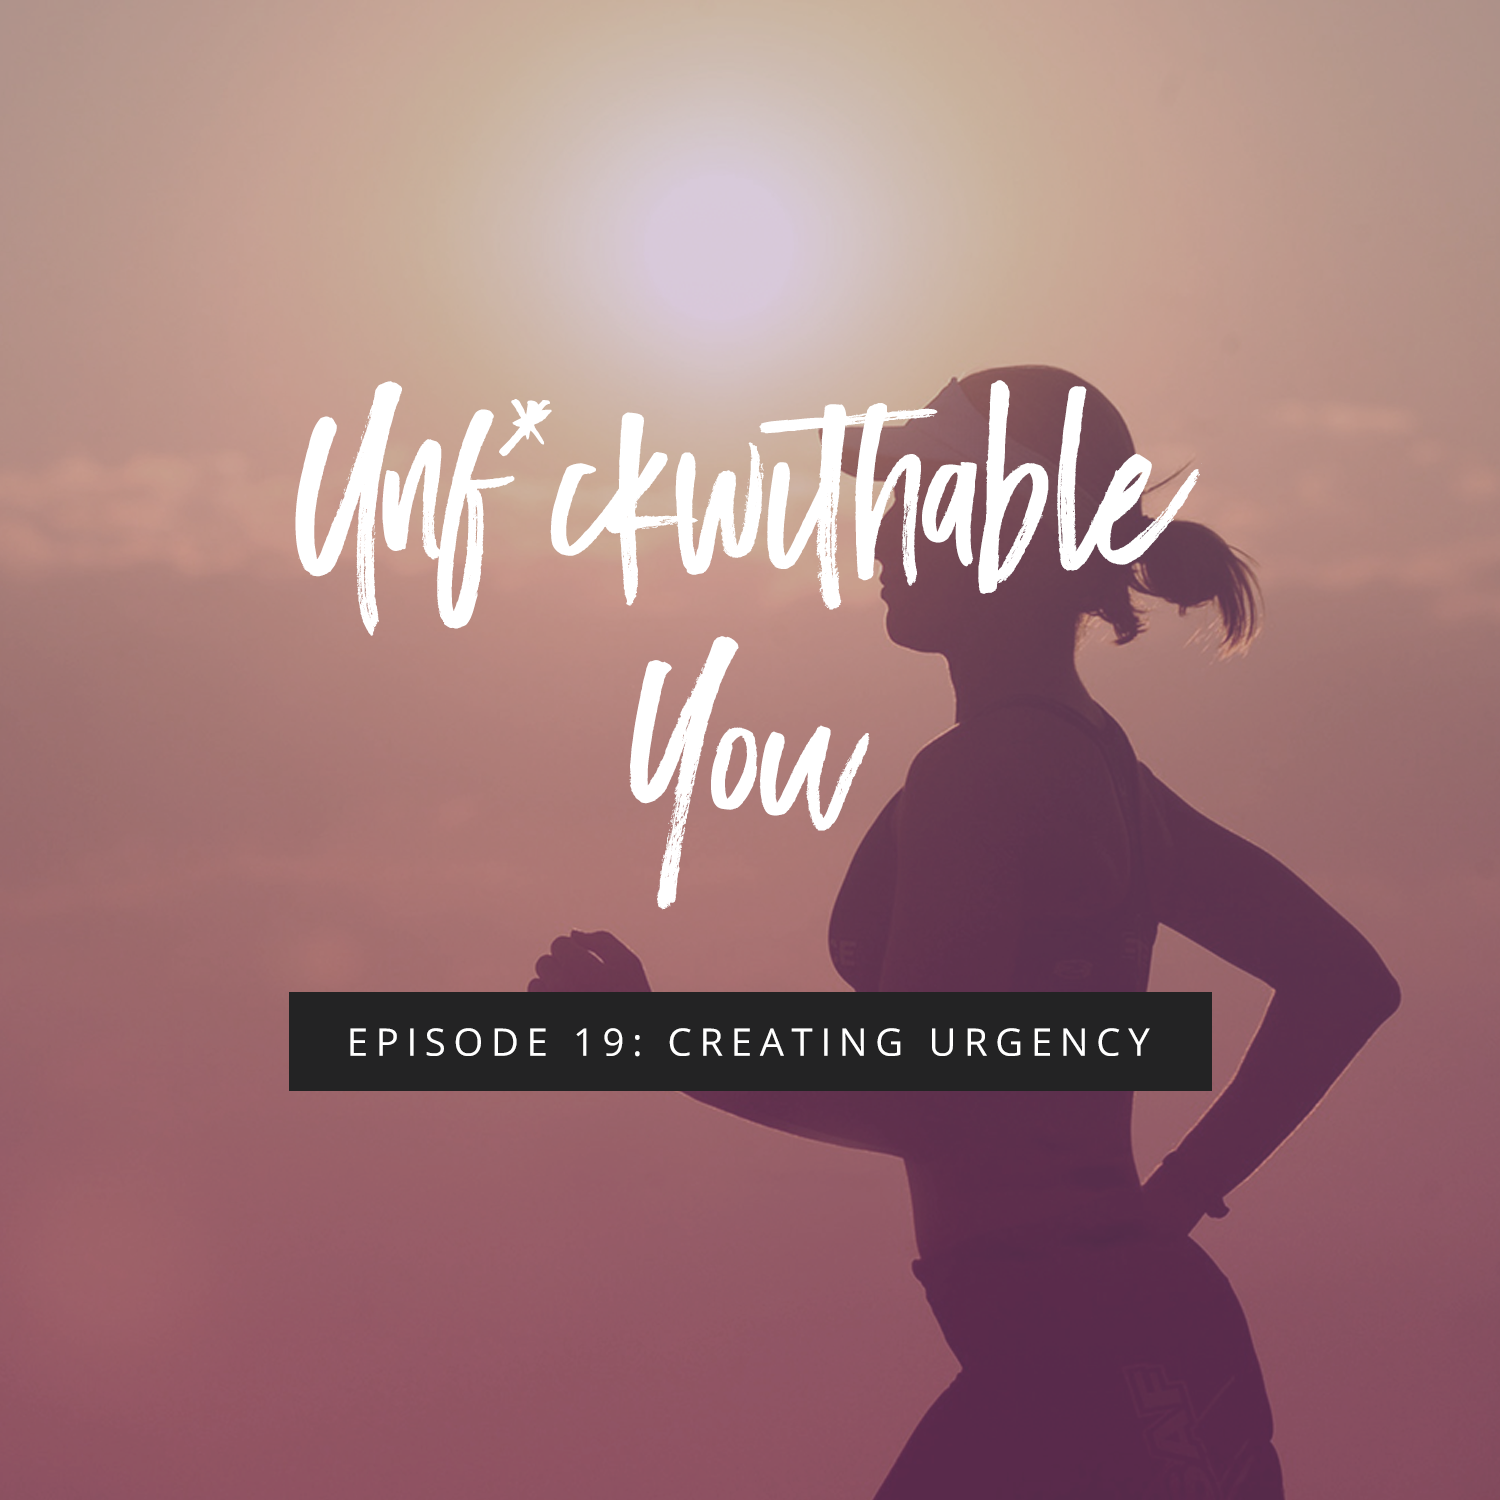 Unf*ckwithable You Episode 19: Creating Urgency